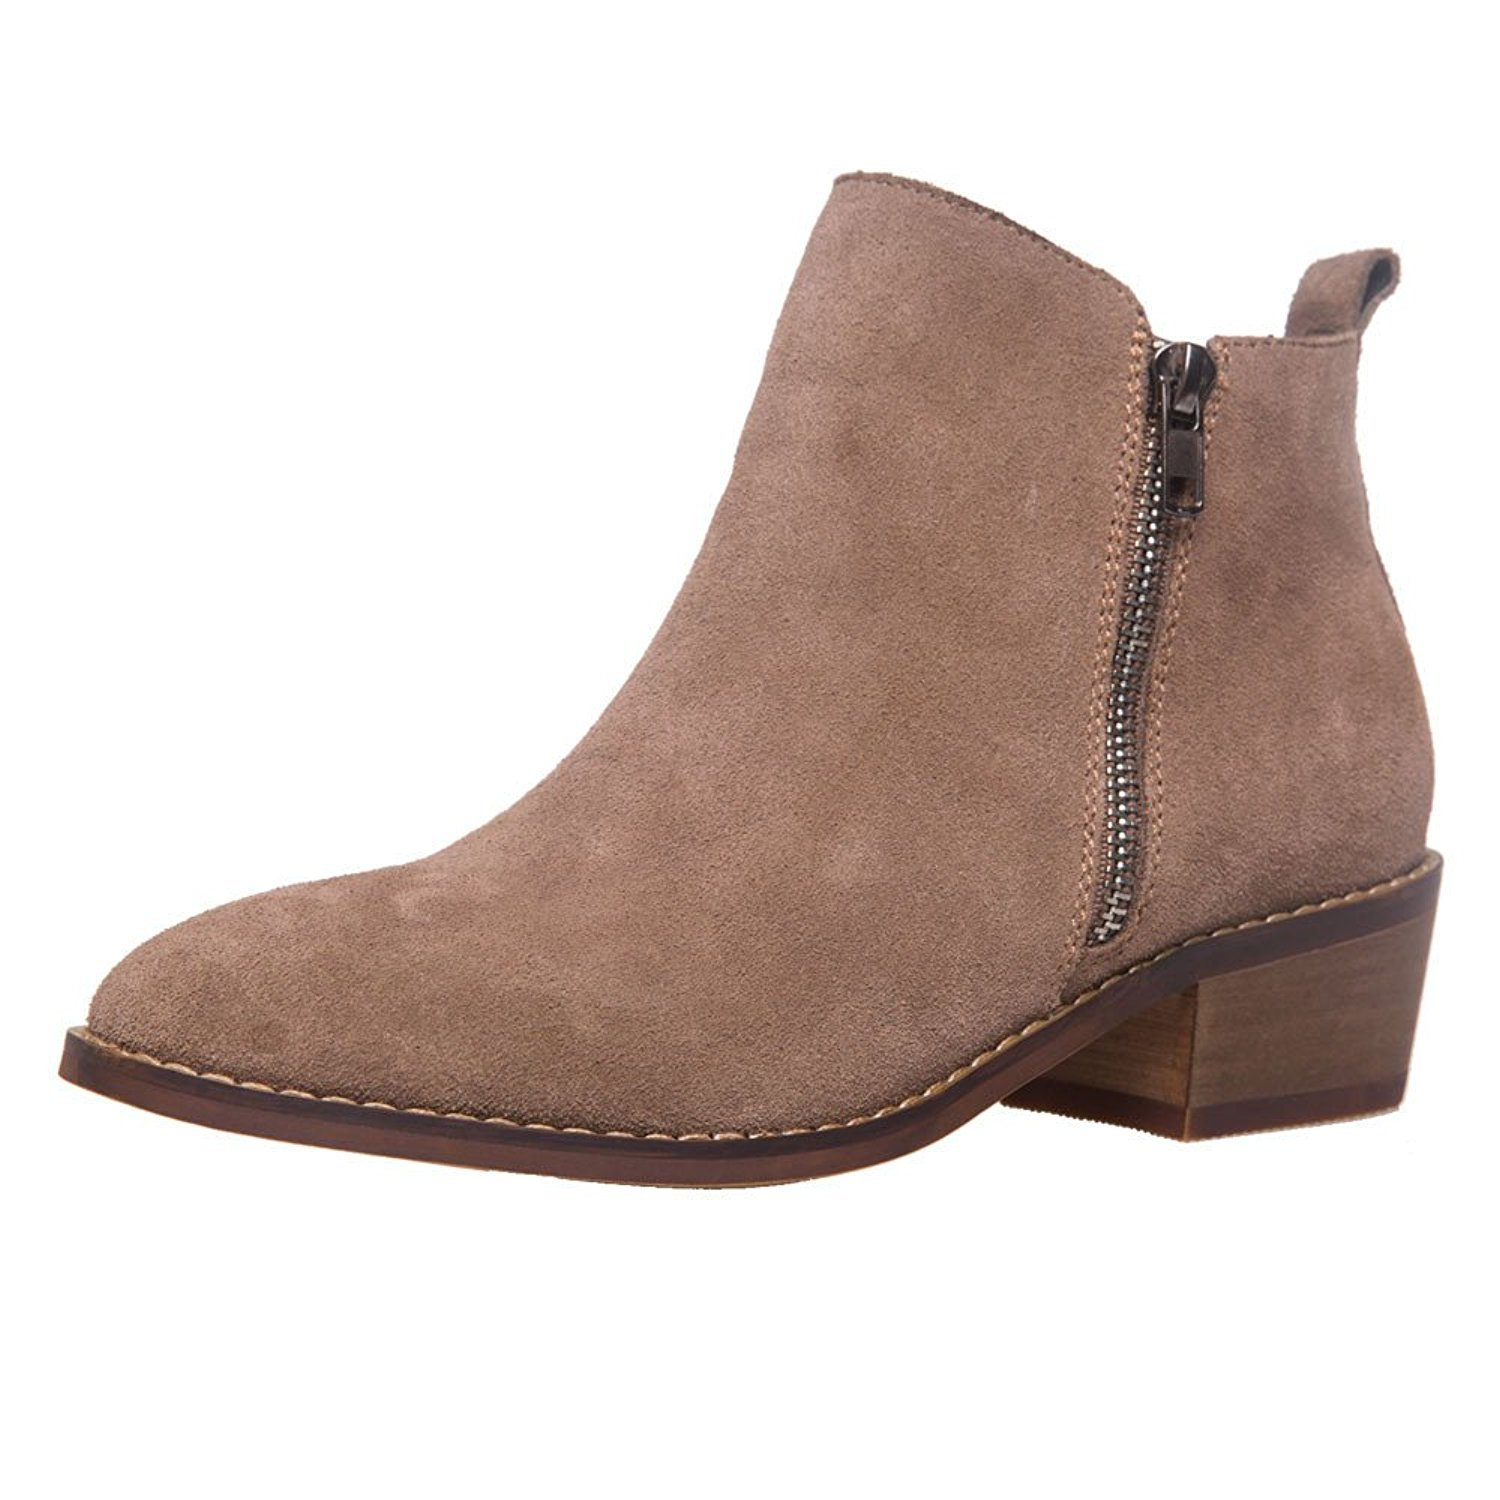 cdae7e7ee51b3 Amazon.com | SheSole Women's Suede Ankle Boots Low Heels Short Camel  Booties US 6 | Ankle & Bootie